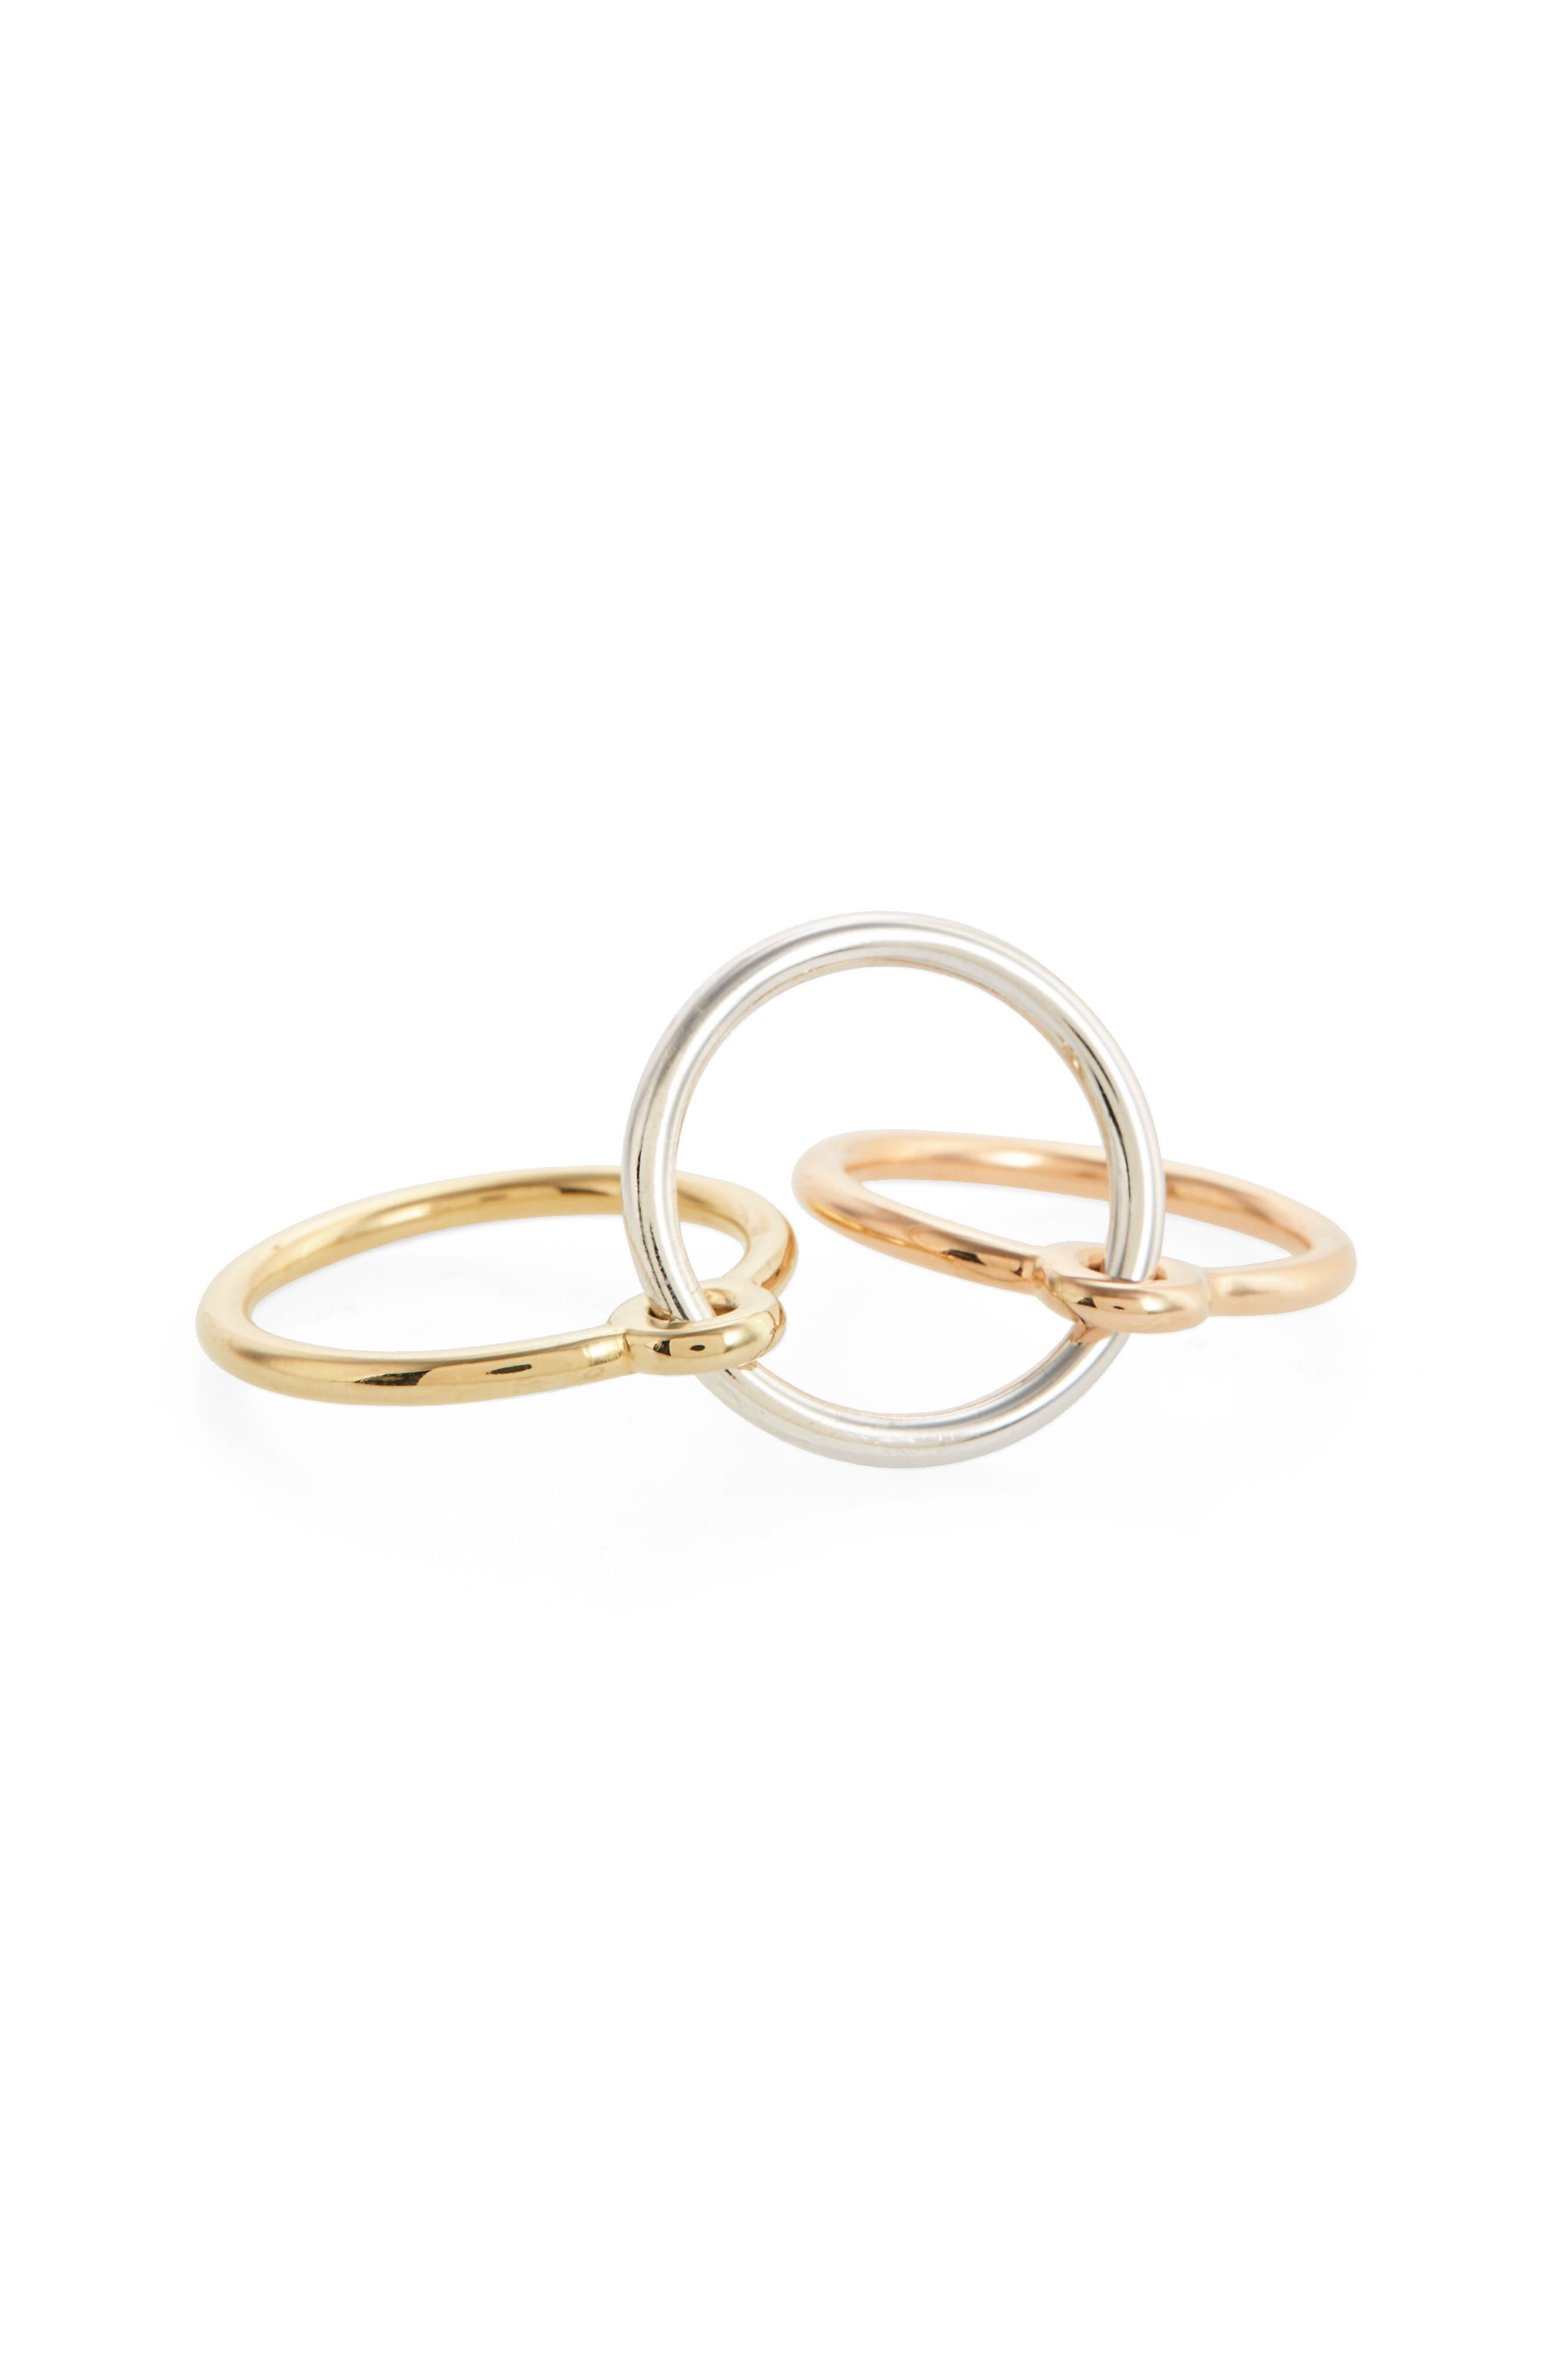 Charlotte Chesnais Three Lovers Linked Rings